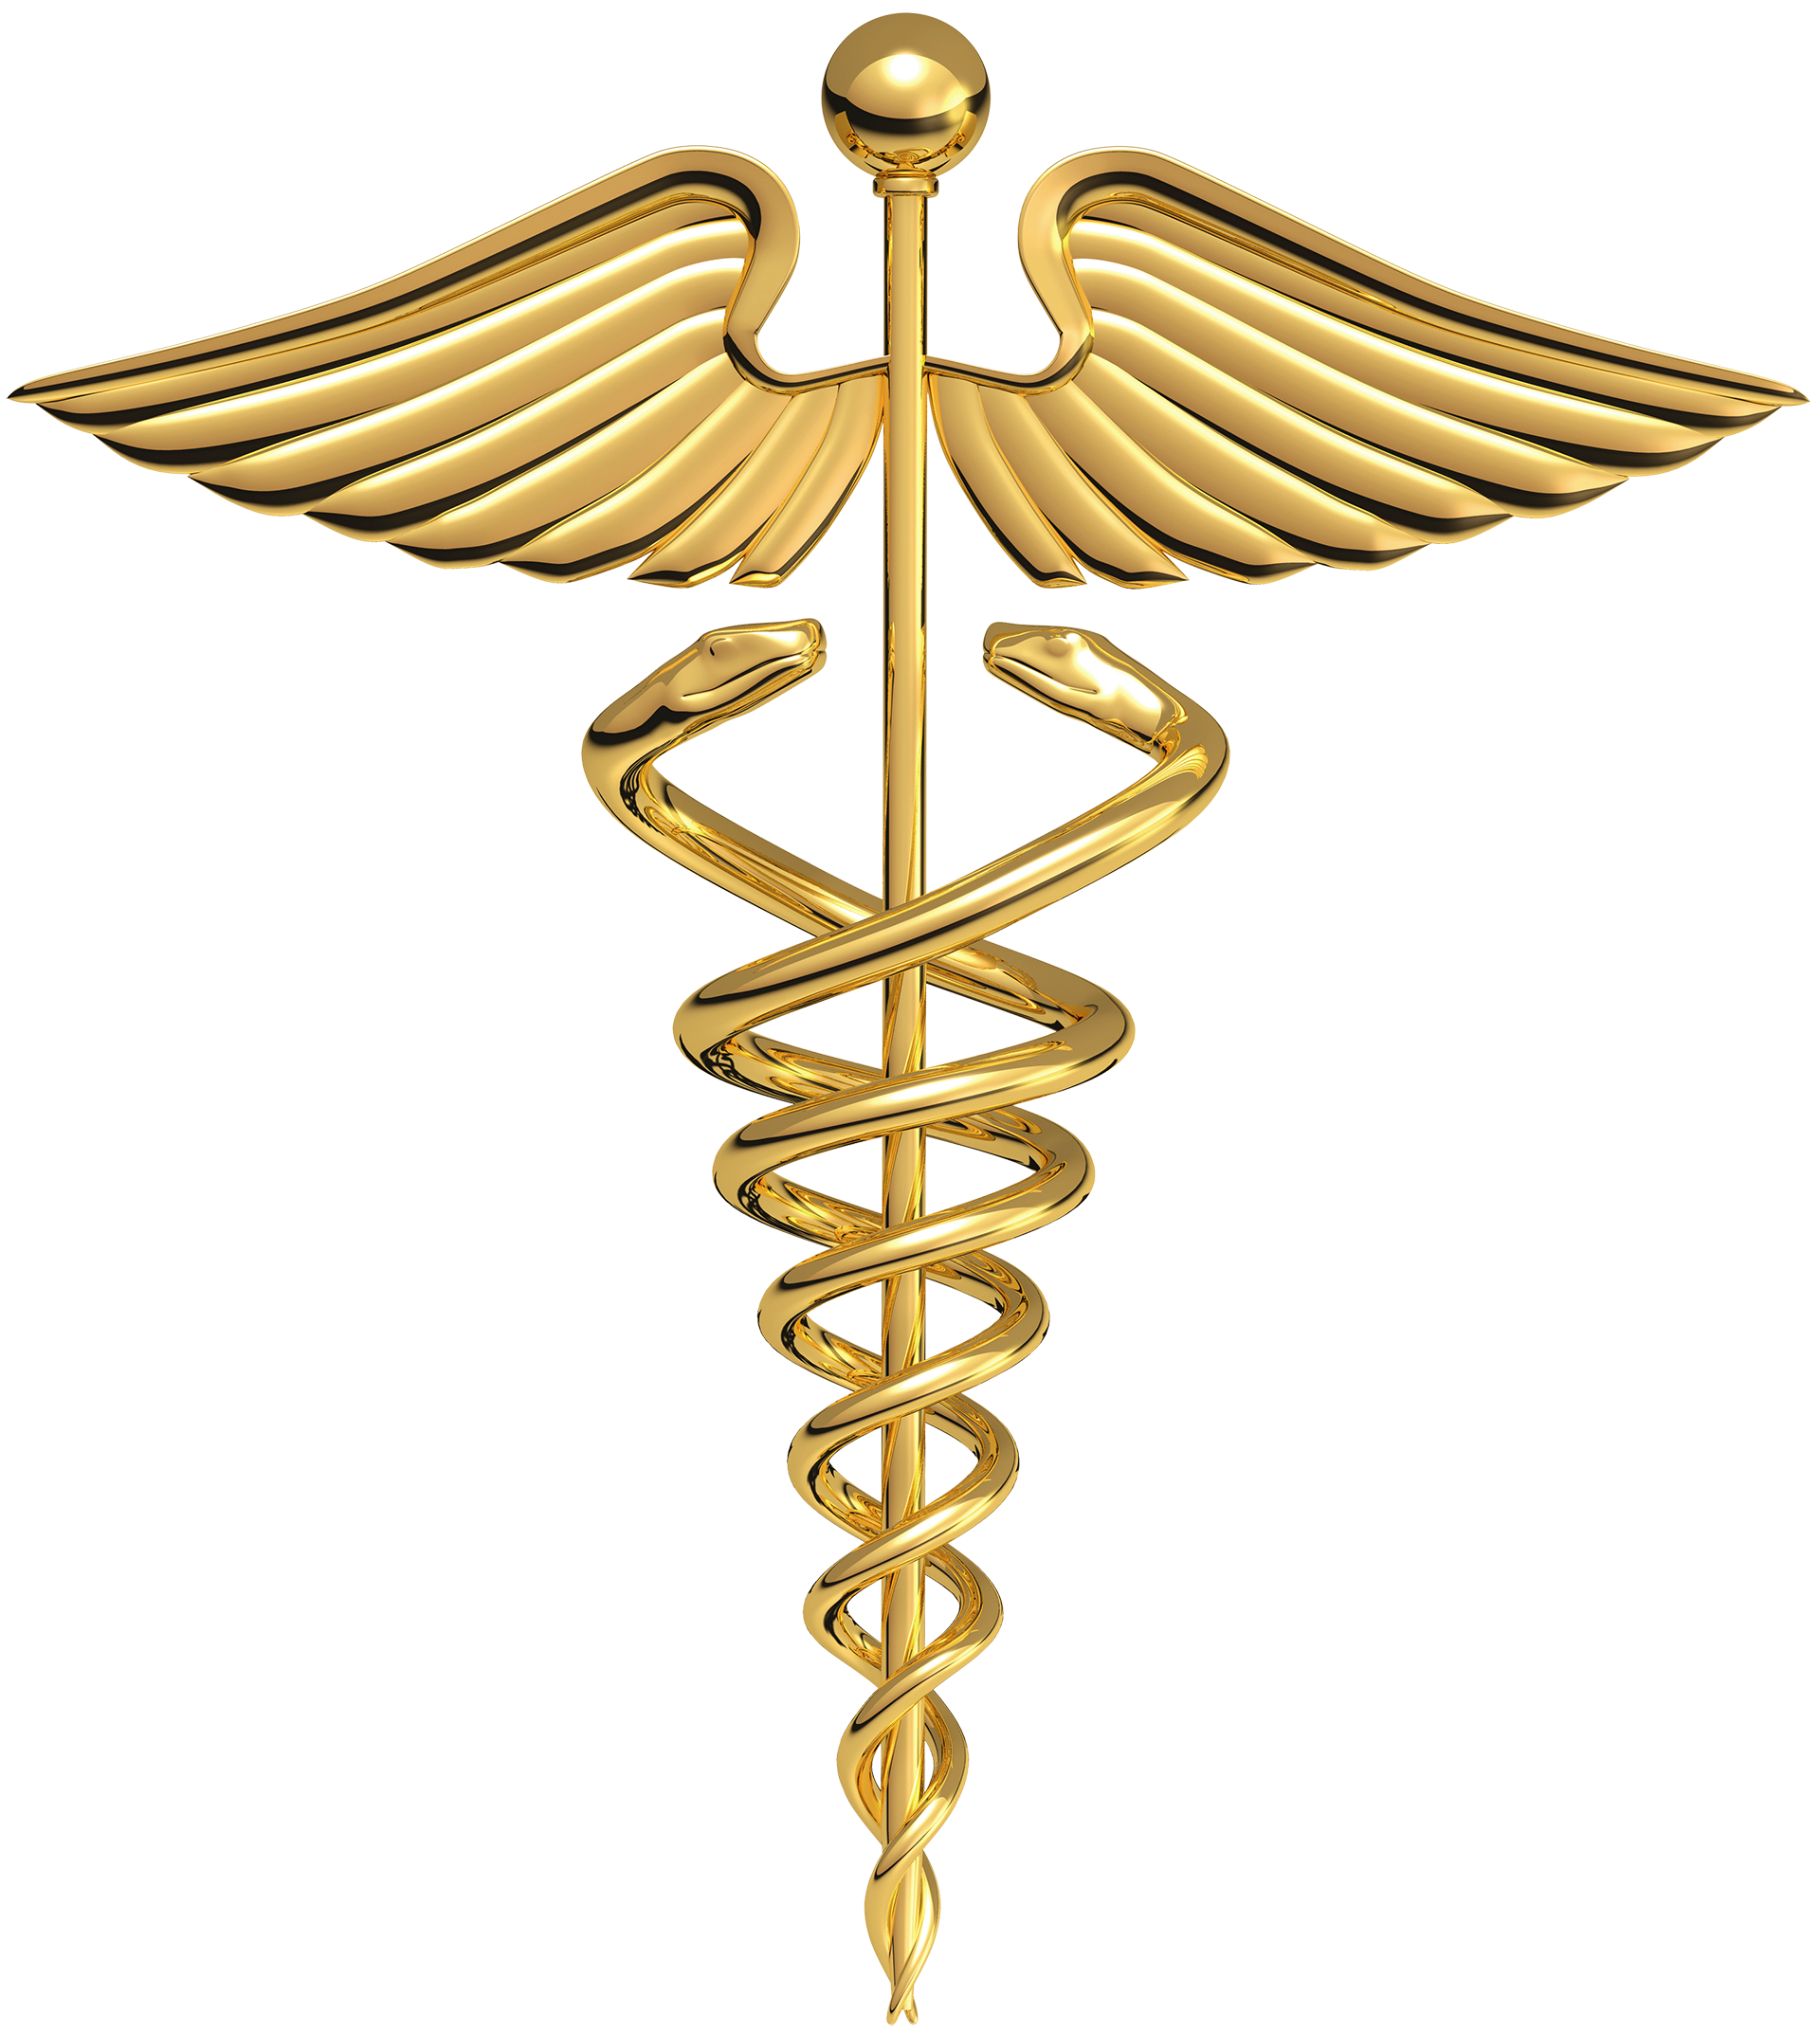 Caduceus - GOOD HEALTH - Messenger of the gods - The gods ARE NEUTRAL, SERIOUS, CRITICAL AND GOOD - COMPASSION - MERCY - RESPECT - EMPATHY - BENEVOLENCE - HUMANENESS - GOD'S WILL - Most Compassionate, Most Merciful, Most Respectful, Most Empathetic, Most Benevolent, Most Humane - Maximizing the Good While Eliminating the Bad in the Most Humane Possible Way - BE HUMANE - SEEK THE TRUTH - SEEK JUSTICE - BE KIND - BE GENTLE - DO NO HARM - DO NOT HATE - DO NOT FEAR - FEAR NOT - BE NOT AFRAID - CAUSE NO FEAR - DO NOT BE SCARY - CAUSE NO PAIN - BE AS PAINLESS AS POSSIBLE - DO NOT PUNISH - DO NOT MAKE THREATS - DO NOT BE COERCIVE - BE PERMISSIVE - BE TOLERANT - USE BIRTH CONTROL - PERMIT DIVORCE - EMPATHY IS CRITICAL - RESPECT FOR THE DIGNITY OF ALL HUMAN BEINGS IS CRITICAL - FREE UNIVERSAL HEALTH CARE WITH ANY DOCTOR ANYWHERE - FREE UNIVERSAL EDUCATION ANYWHERE - UNIVERSAL HOME OWNERSHIP EVERYWHERE